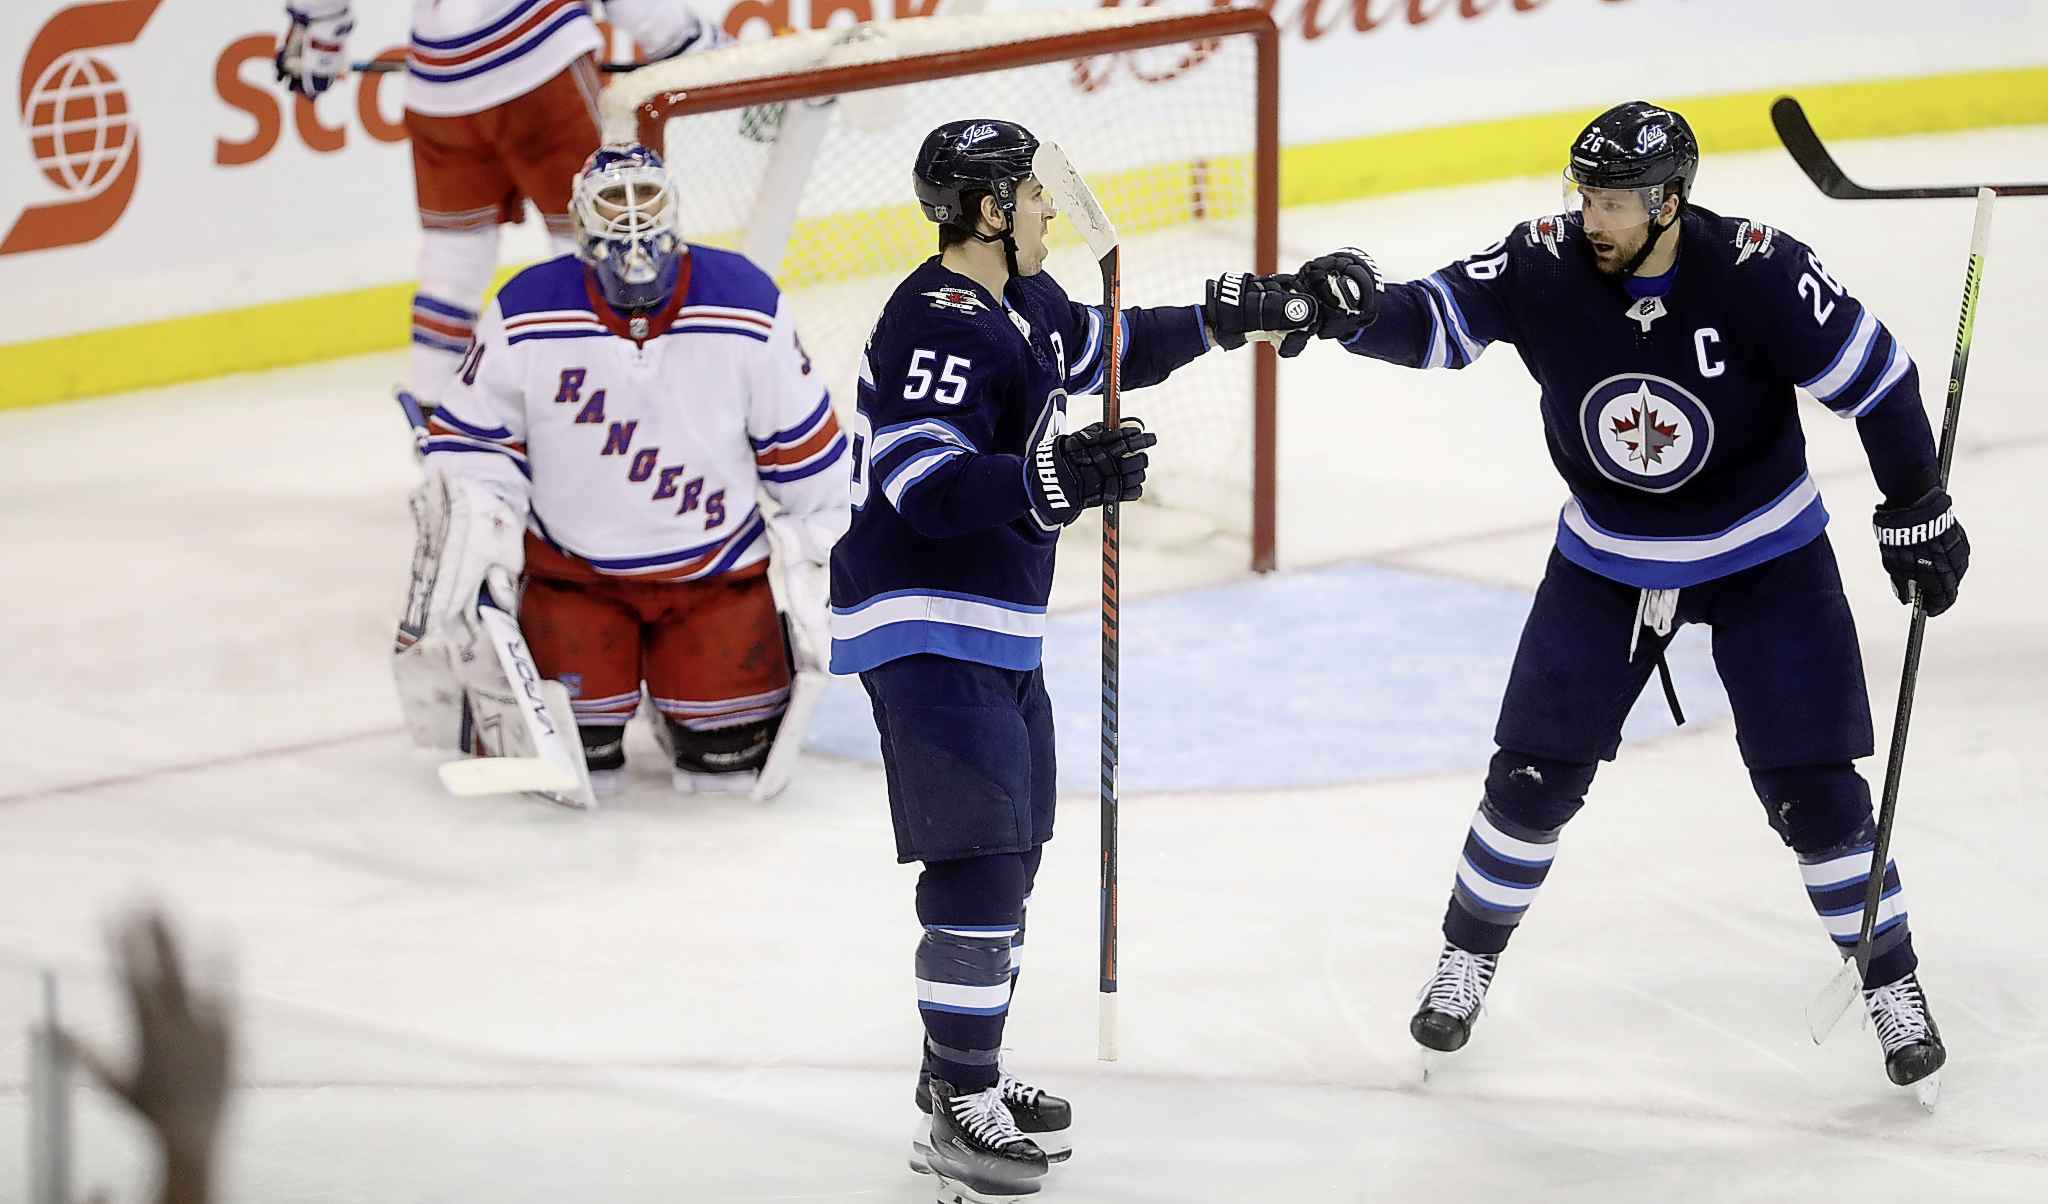 Scheifele, left, with linemate, right wing Blake Wheeler. Wheeler's five-year contract extension will kick in next season, paying him $8.25 million a year and pushing Scheifele even further down the list of top salaries on the Jets.